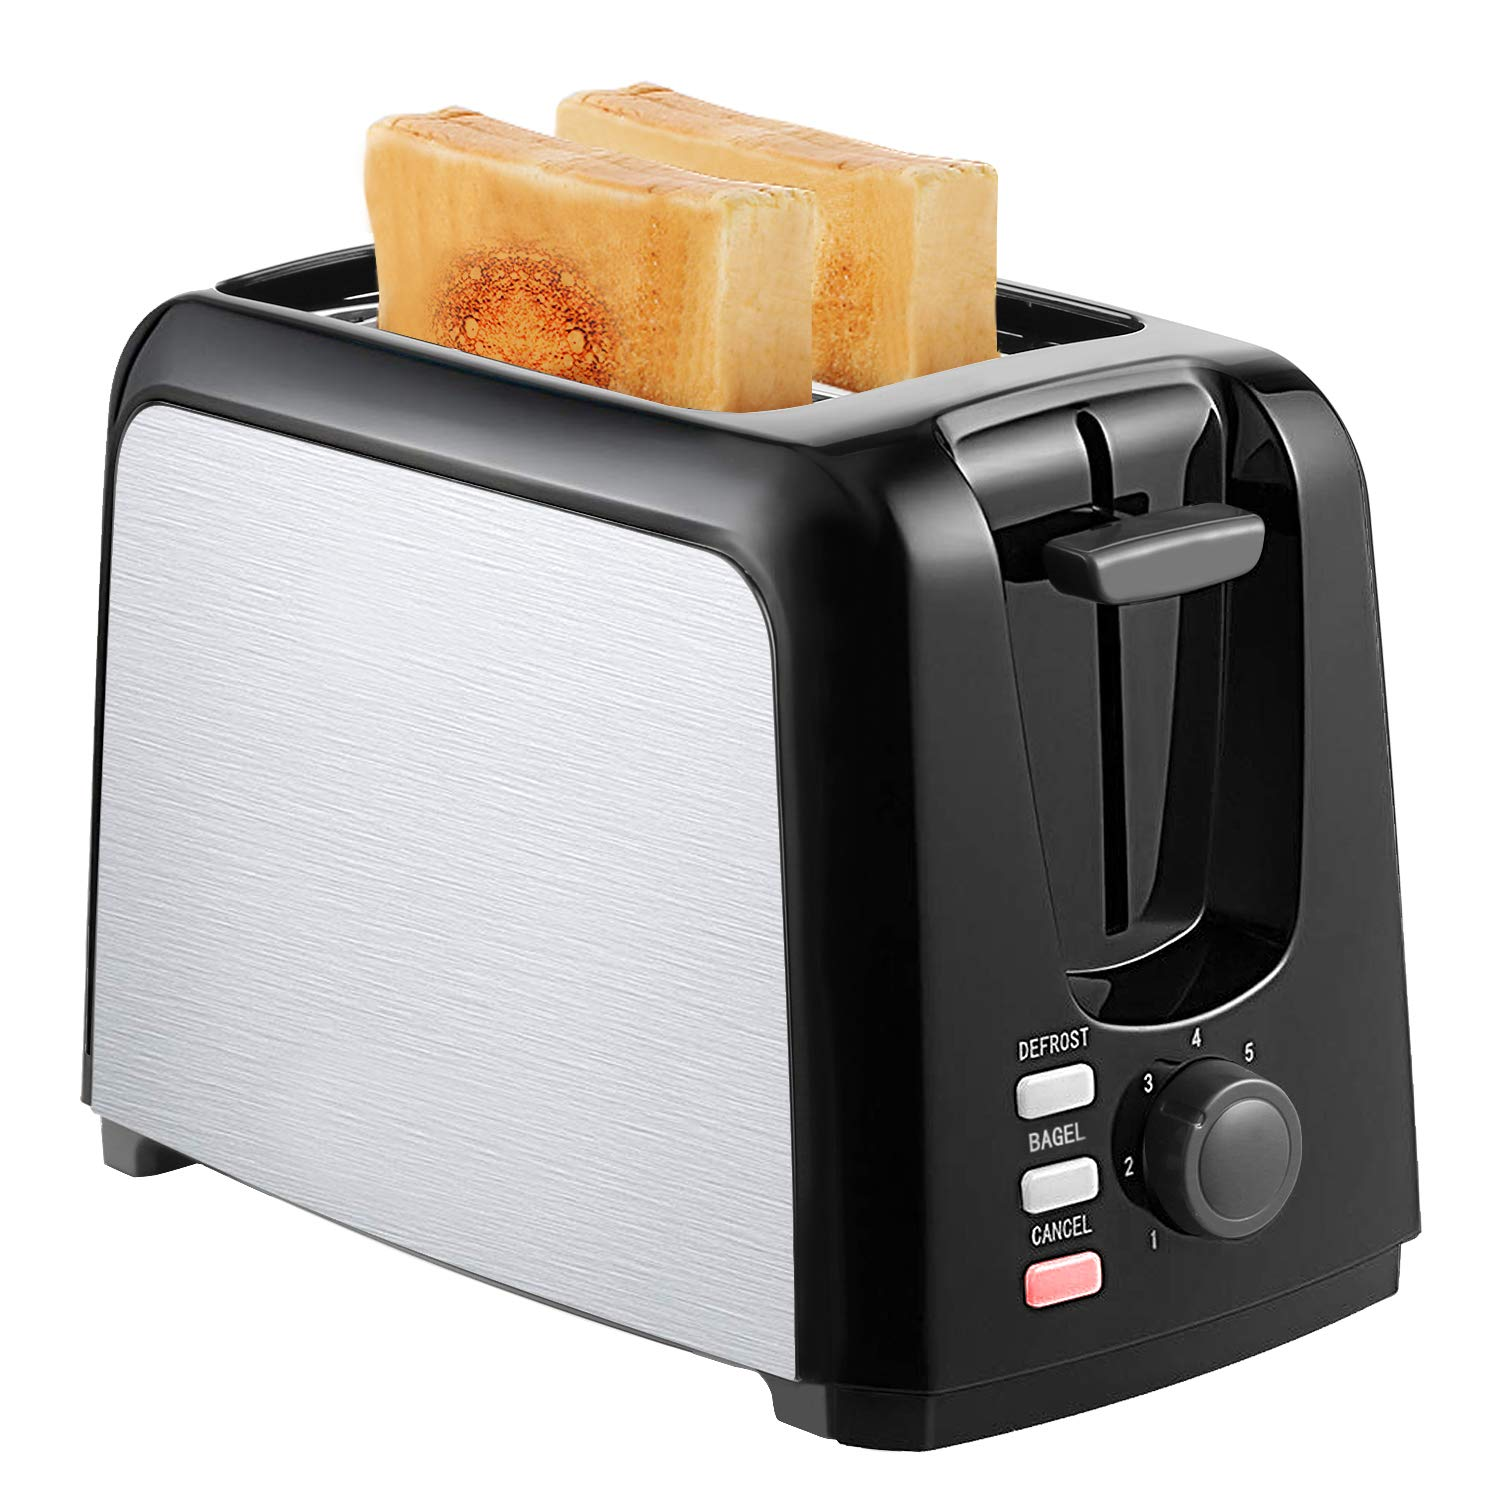 Toaster 2 Slice Best Rated Prime 2 Slice Toaster Extra Wide Slot for Bread Toasted with 7 Shade Settings Removable Crumb Tray Defrost/Bagel/Cancel Functions by Pipigo